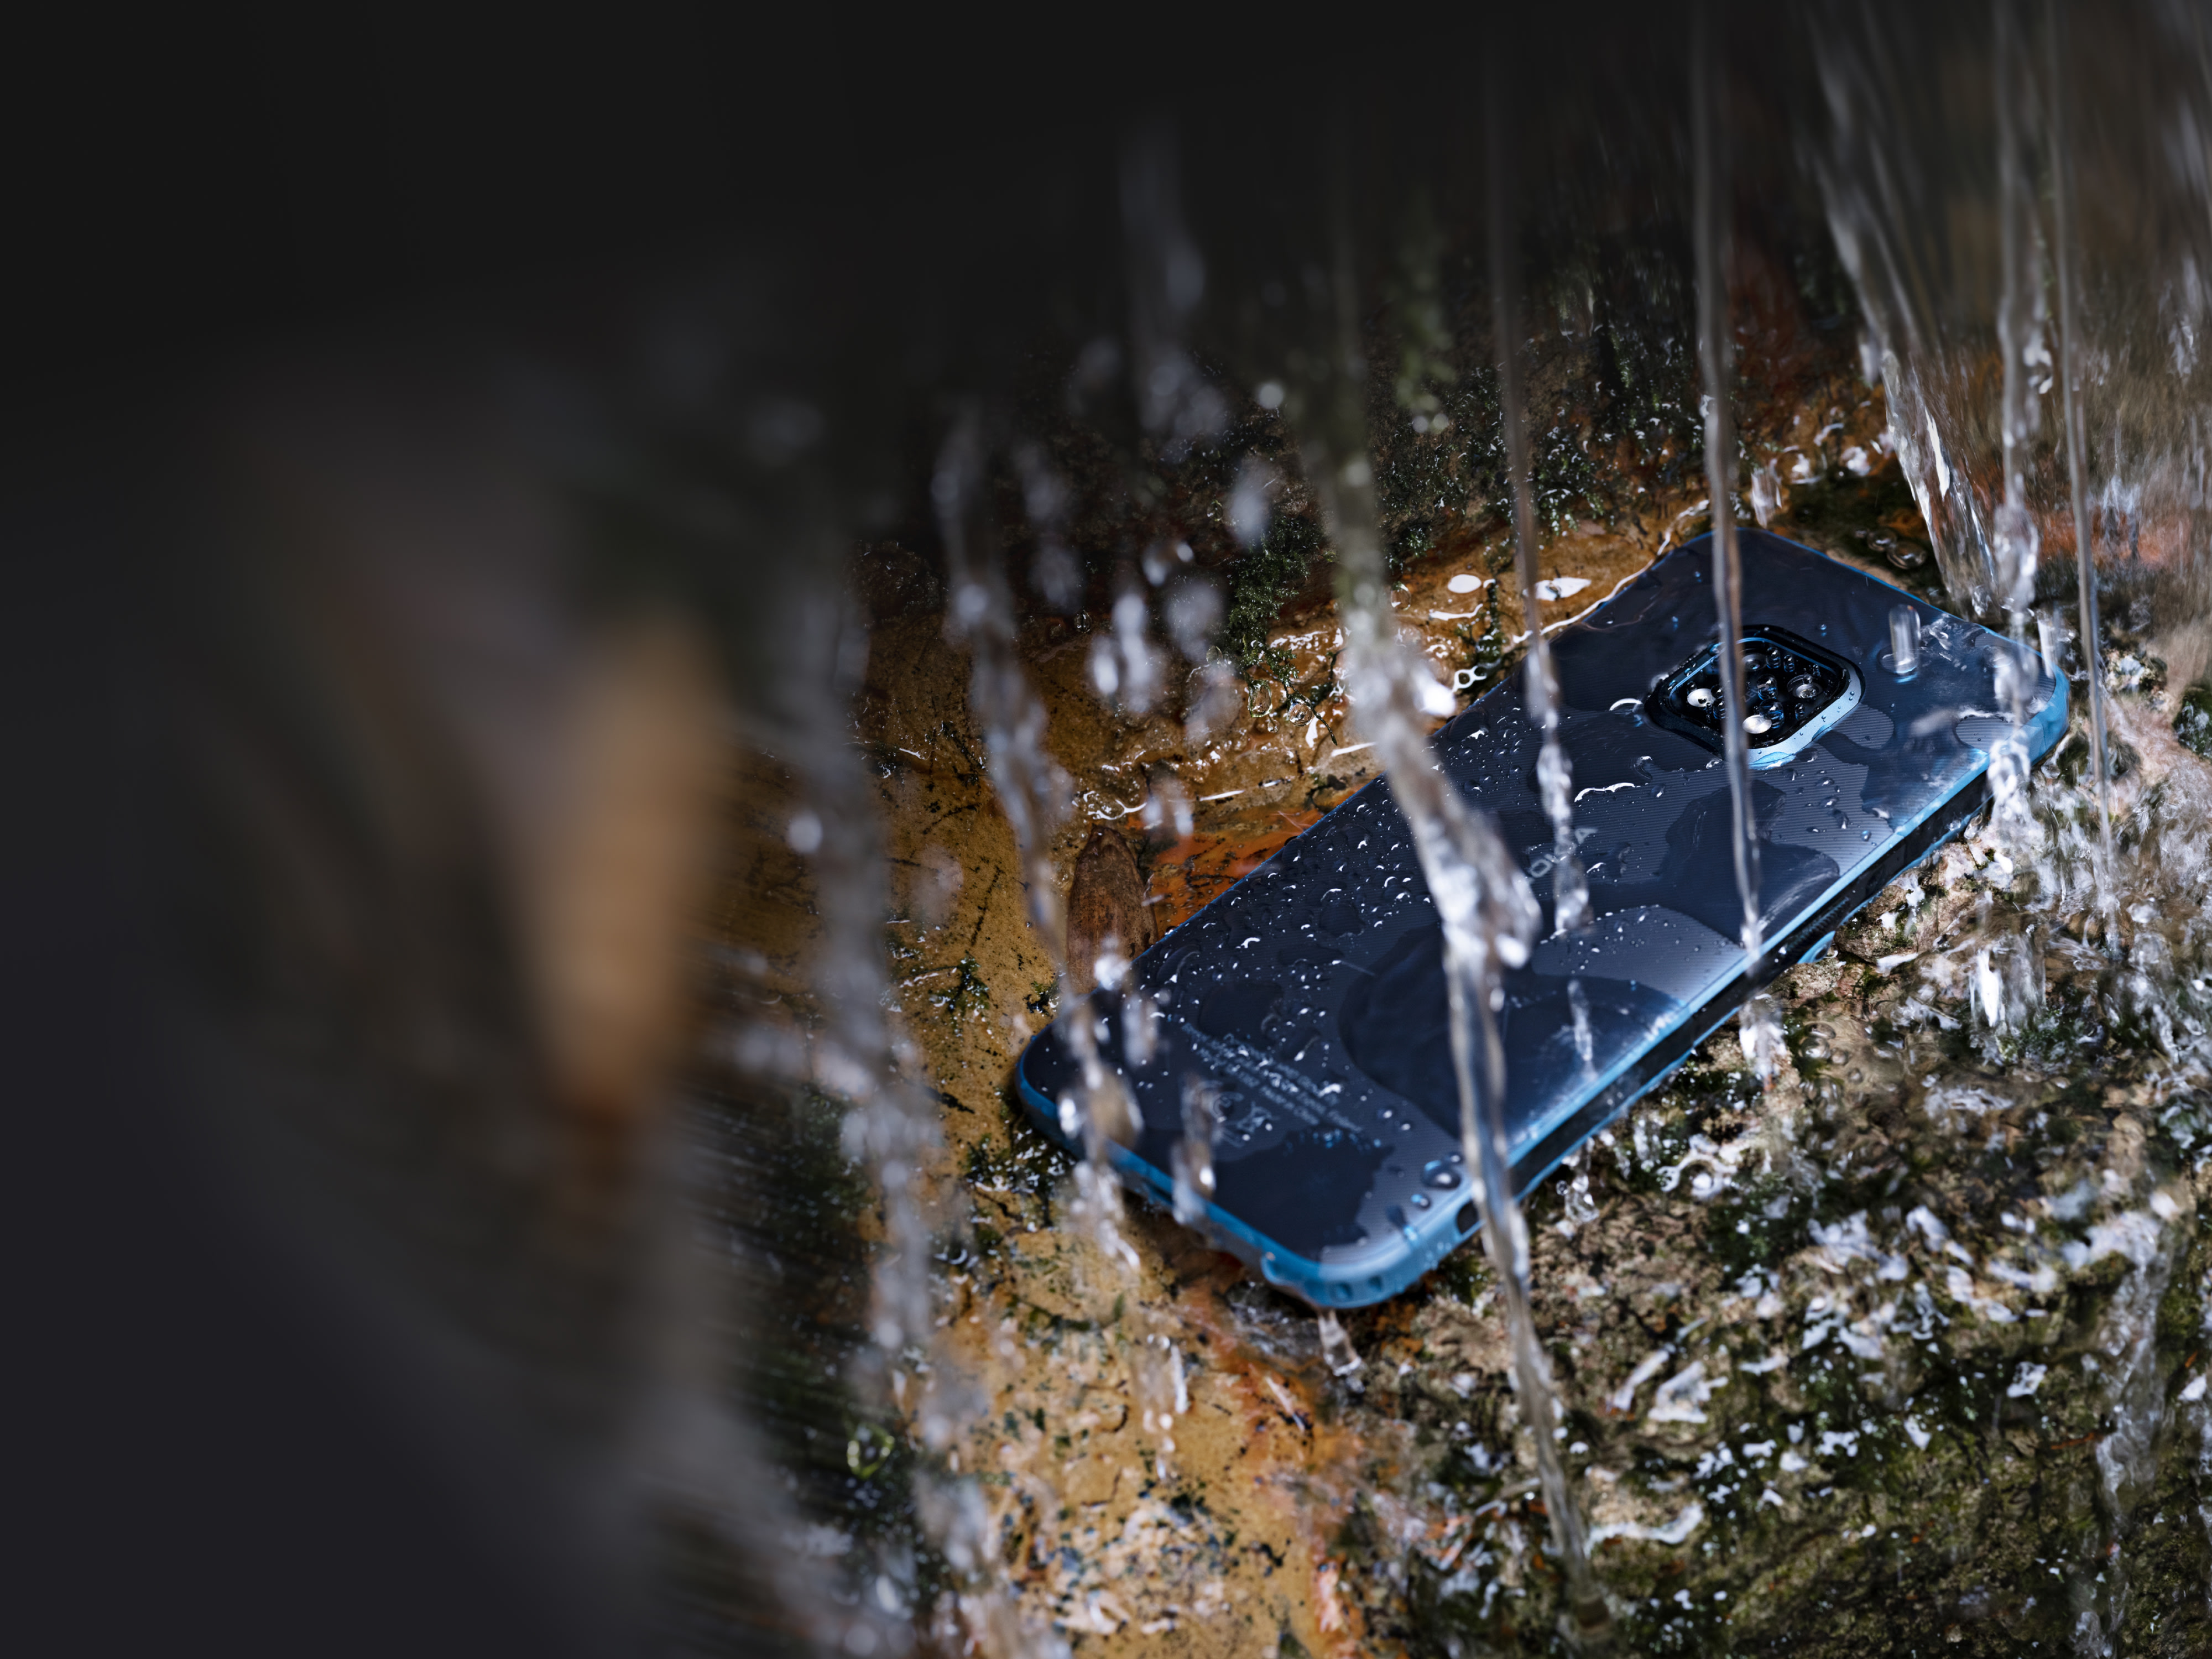 The robust Nokia XR20 phone enduring heavy water exposure.